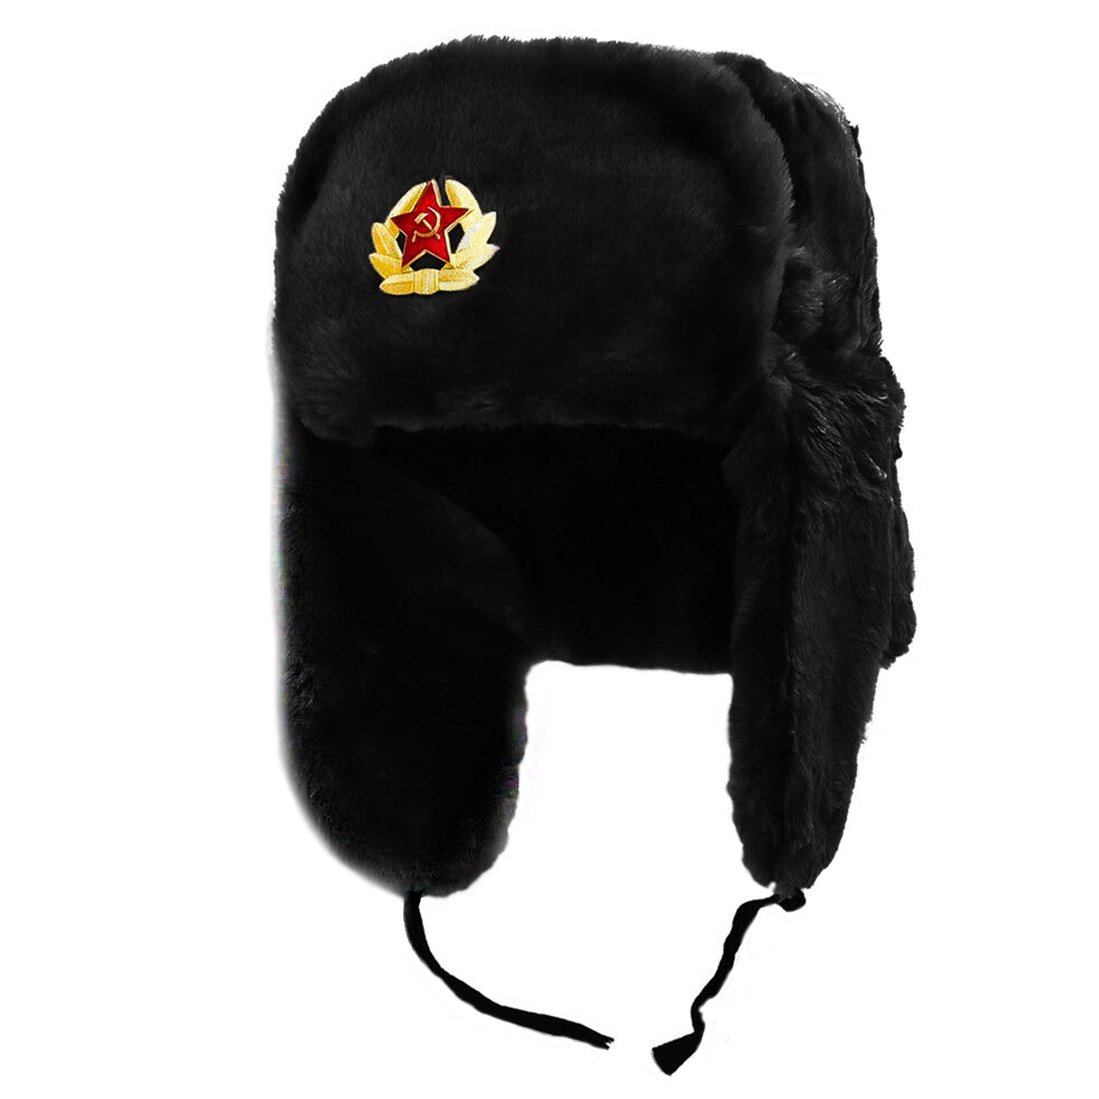 Ushanka, size 58/M. Russian Military Hat with Soviet Army Soldier Insignia, Black